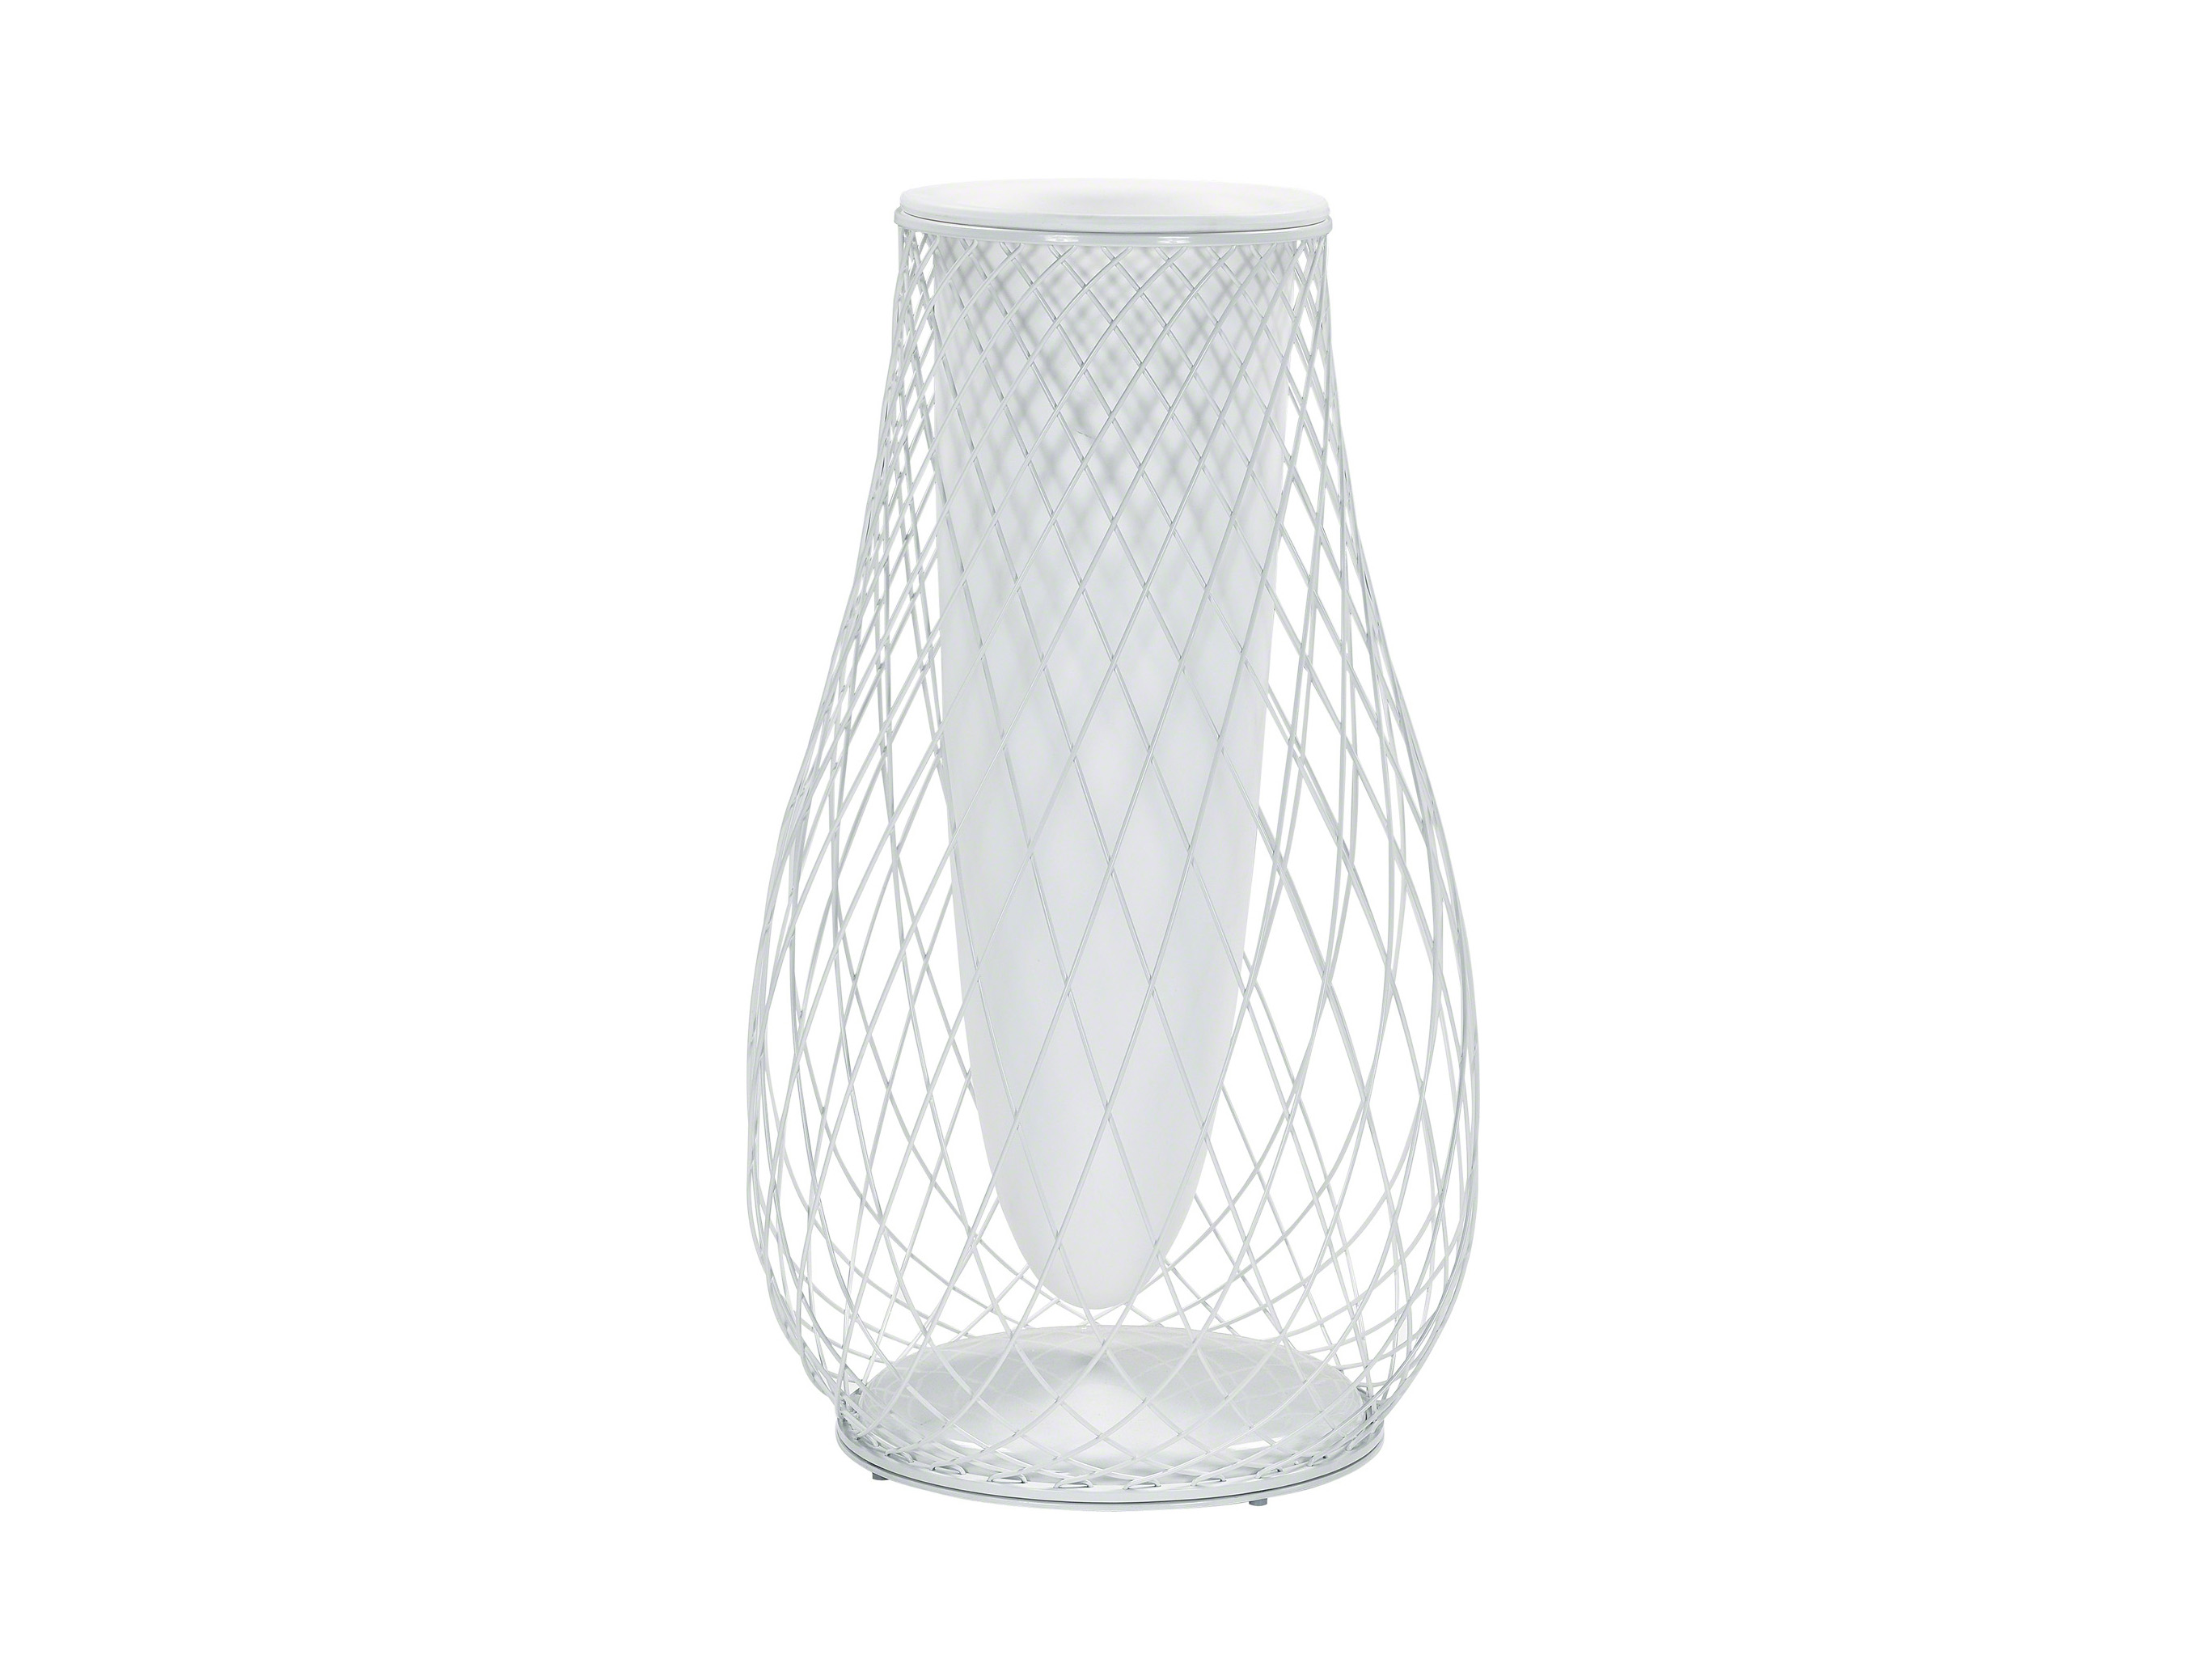 A big outdoor white metal mesh vase by Coalesse